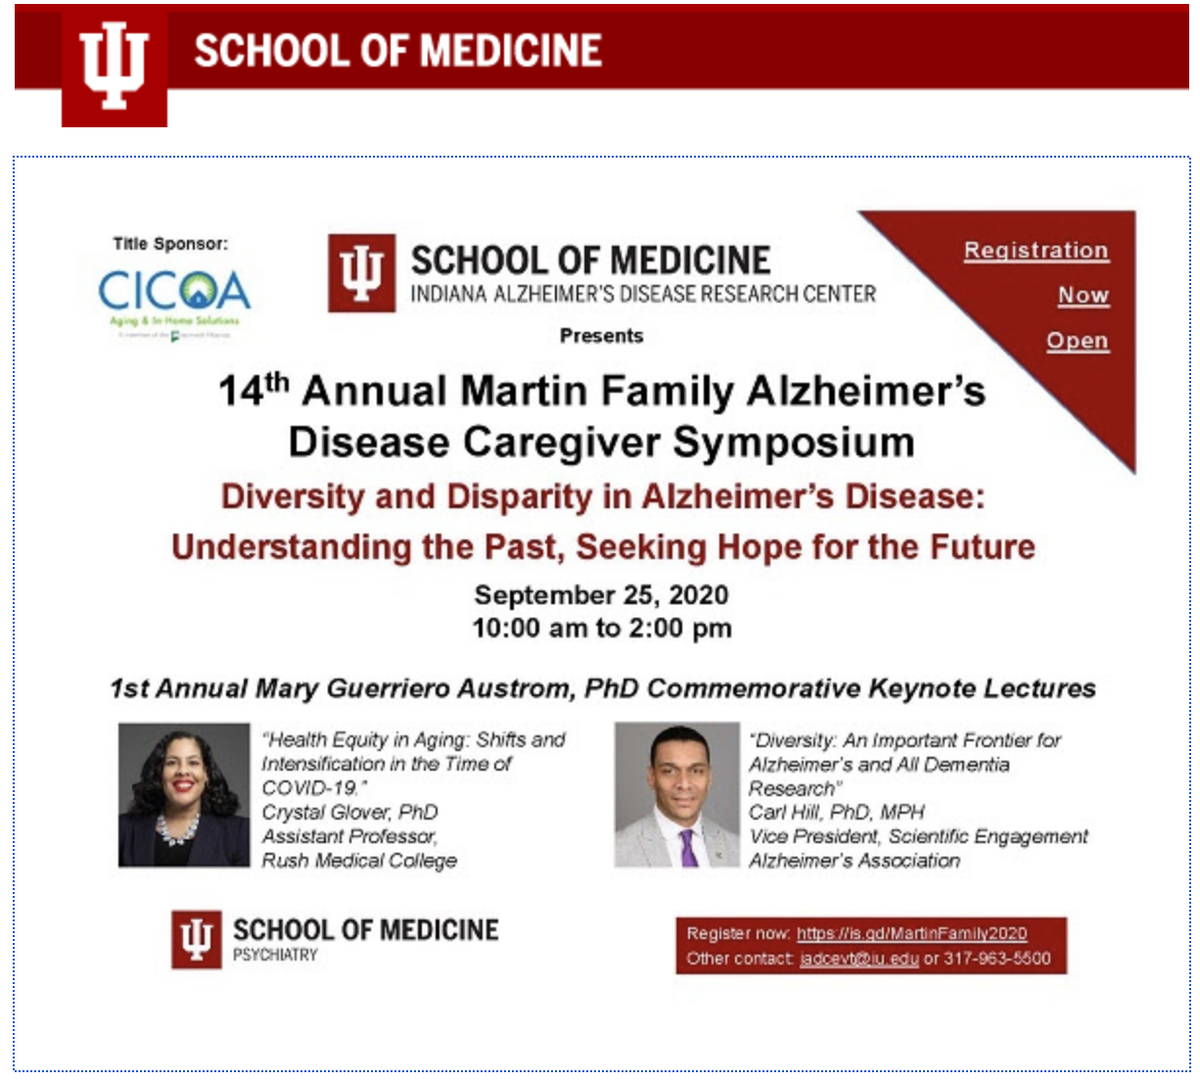 Don't miss #IU #ADRC's #AD #Caregiver Symposium on #Diversity & #Disparities w/ awesome #KeynoteSpeakers: @hillcv17 & @CGster!   *09/25/20 @ 10am - 2pm*  #BrainHealthEquity @andrealgilmore @ISTAART @ytquiroz @gmbreads @UsA2_Latinos @HeatherAlz @ALZNYCC1   https://t.co/c7BAV00pt0 https://t.co/QHawvRwOcI